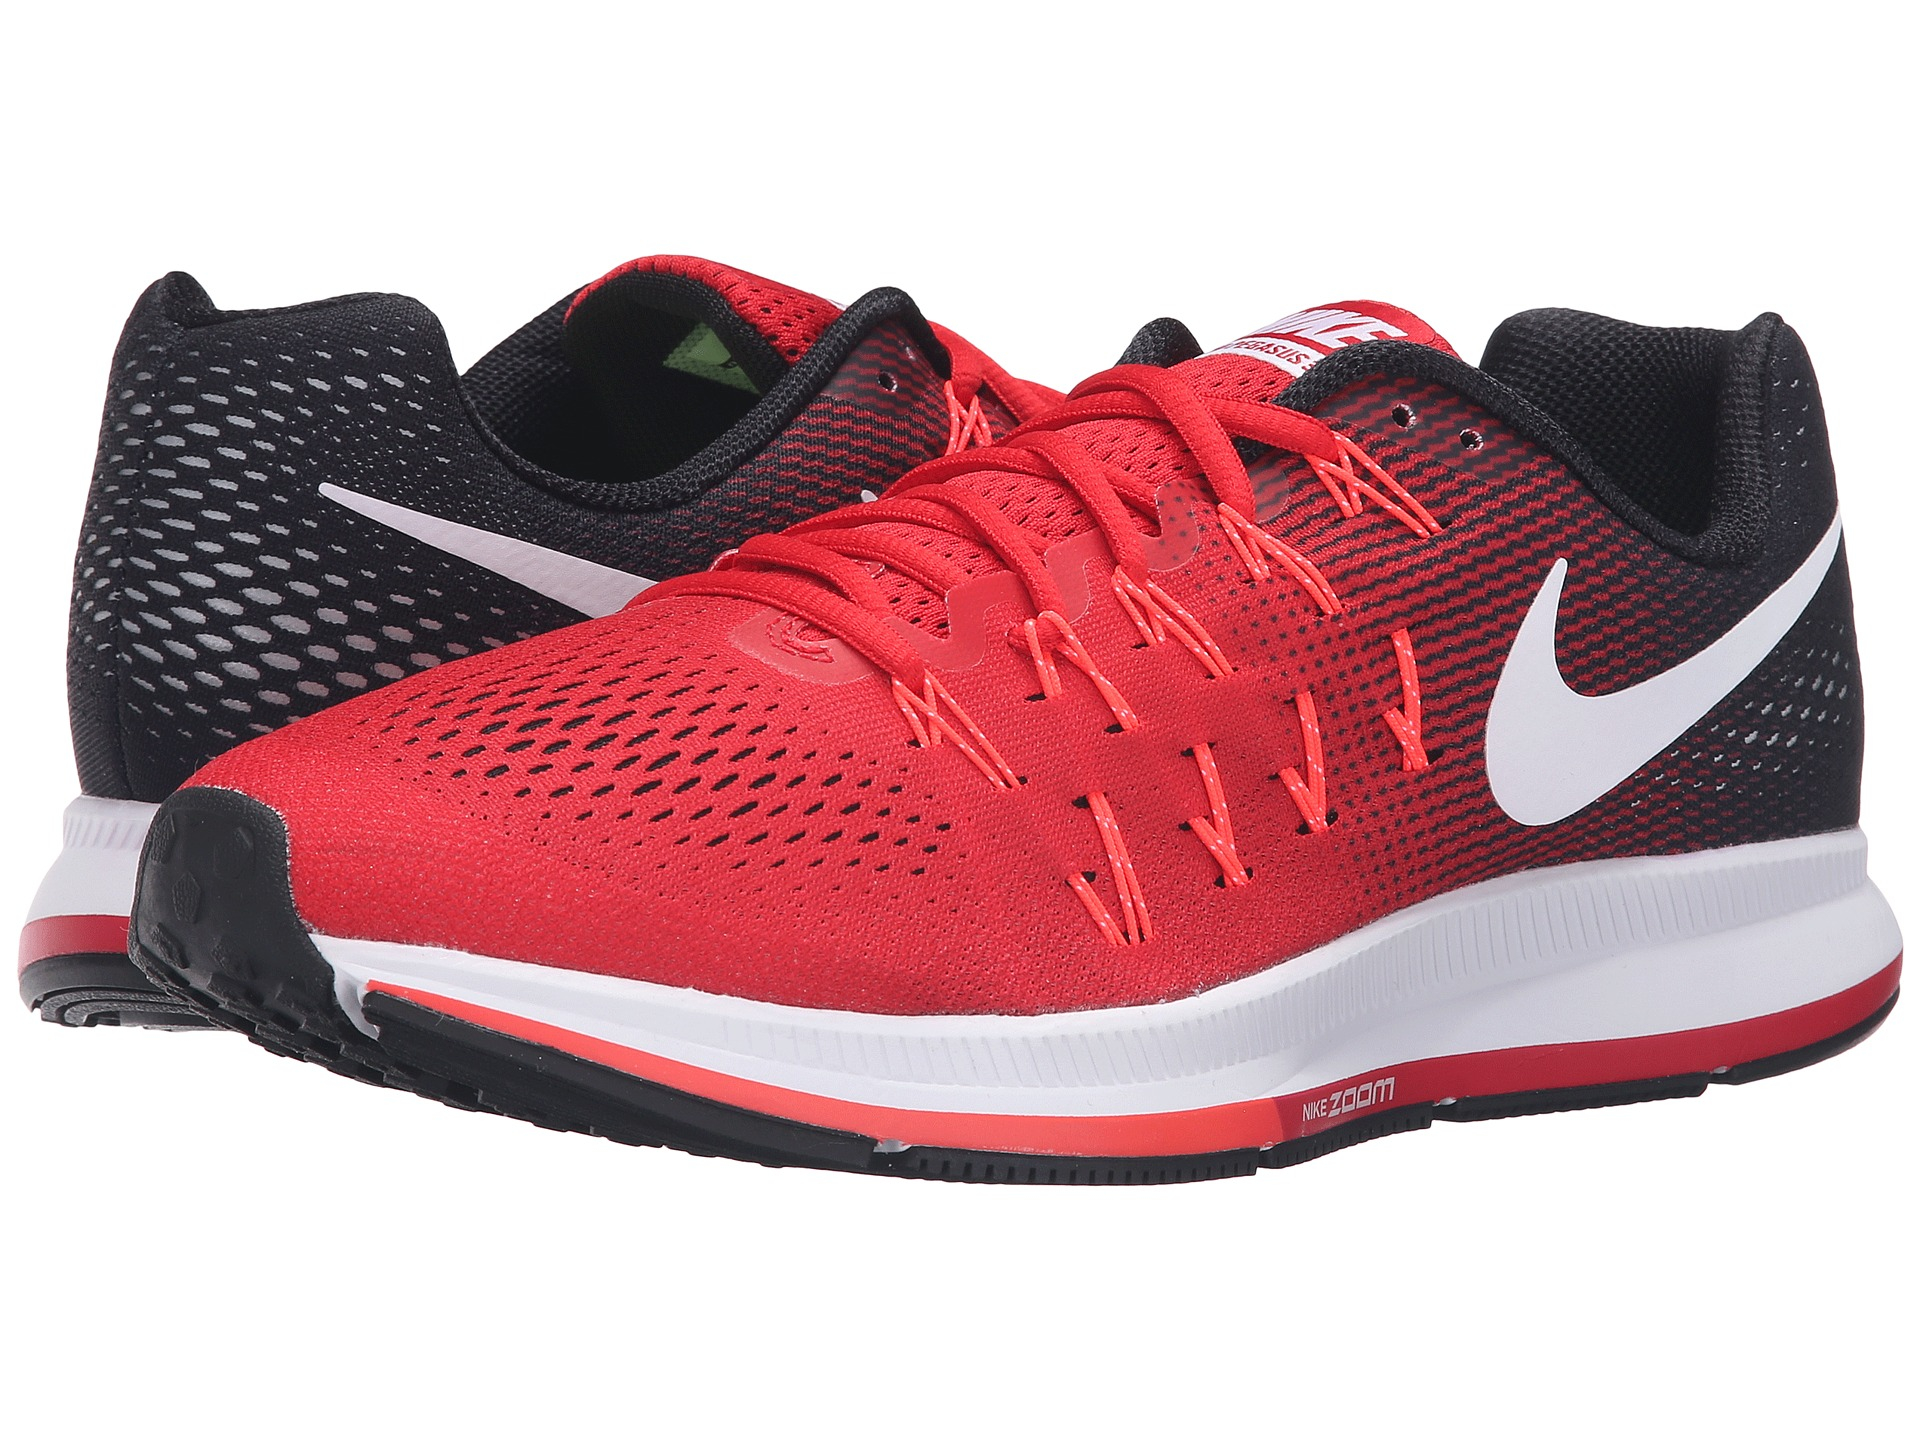 new arrival e7cd6 6c4ee Nike Air Zoom Pegasus 33 in Red for Men - Lyst